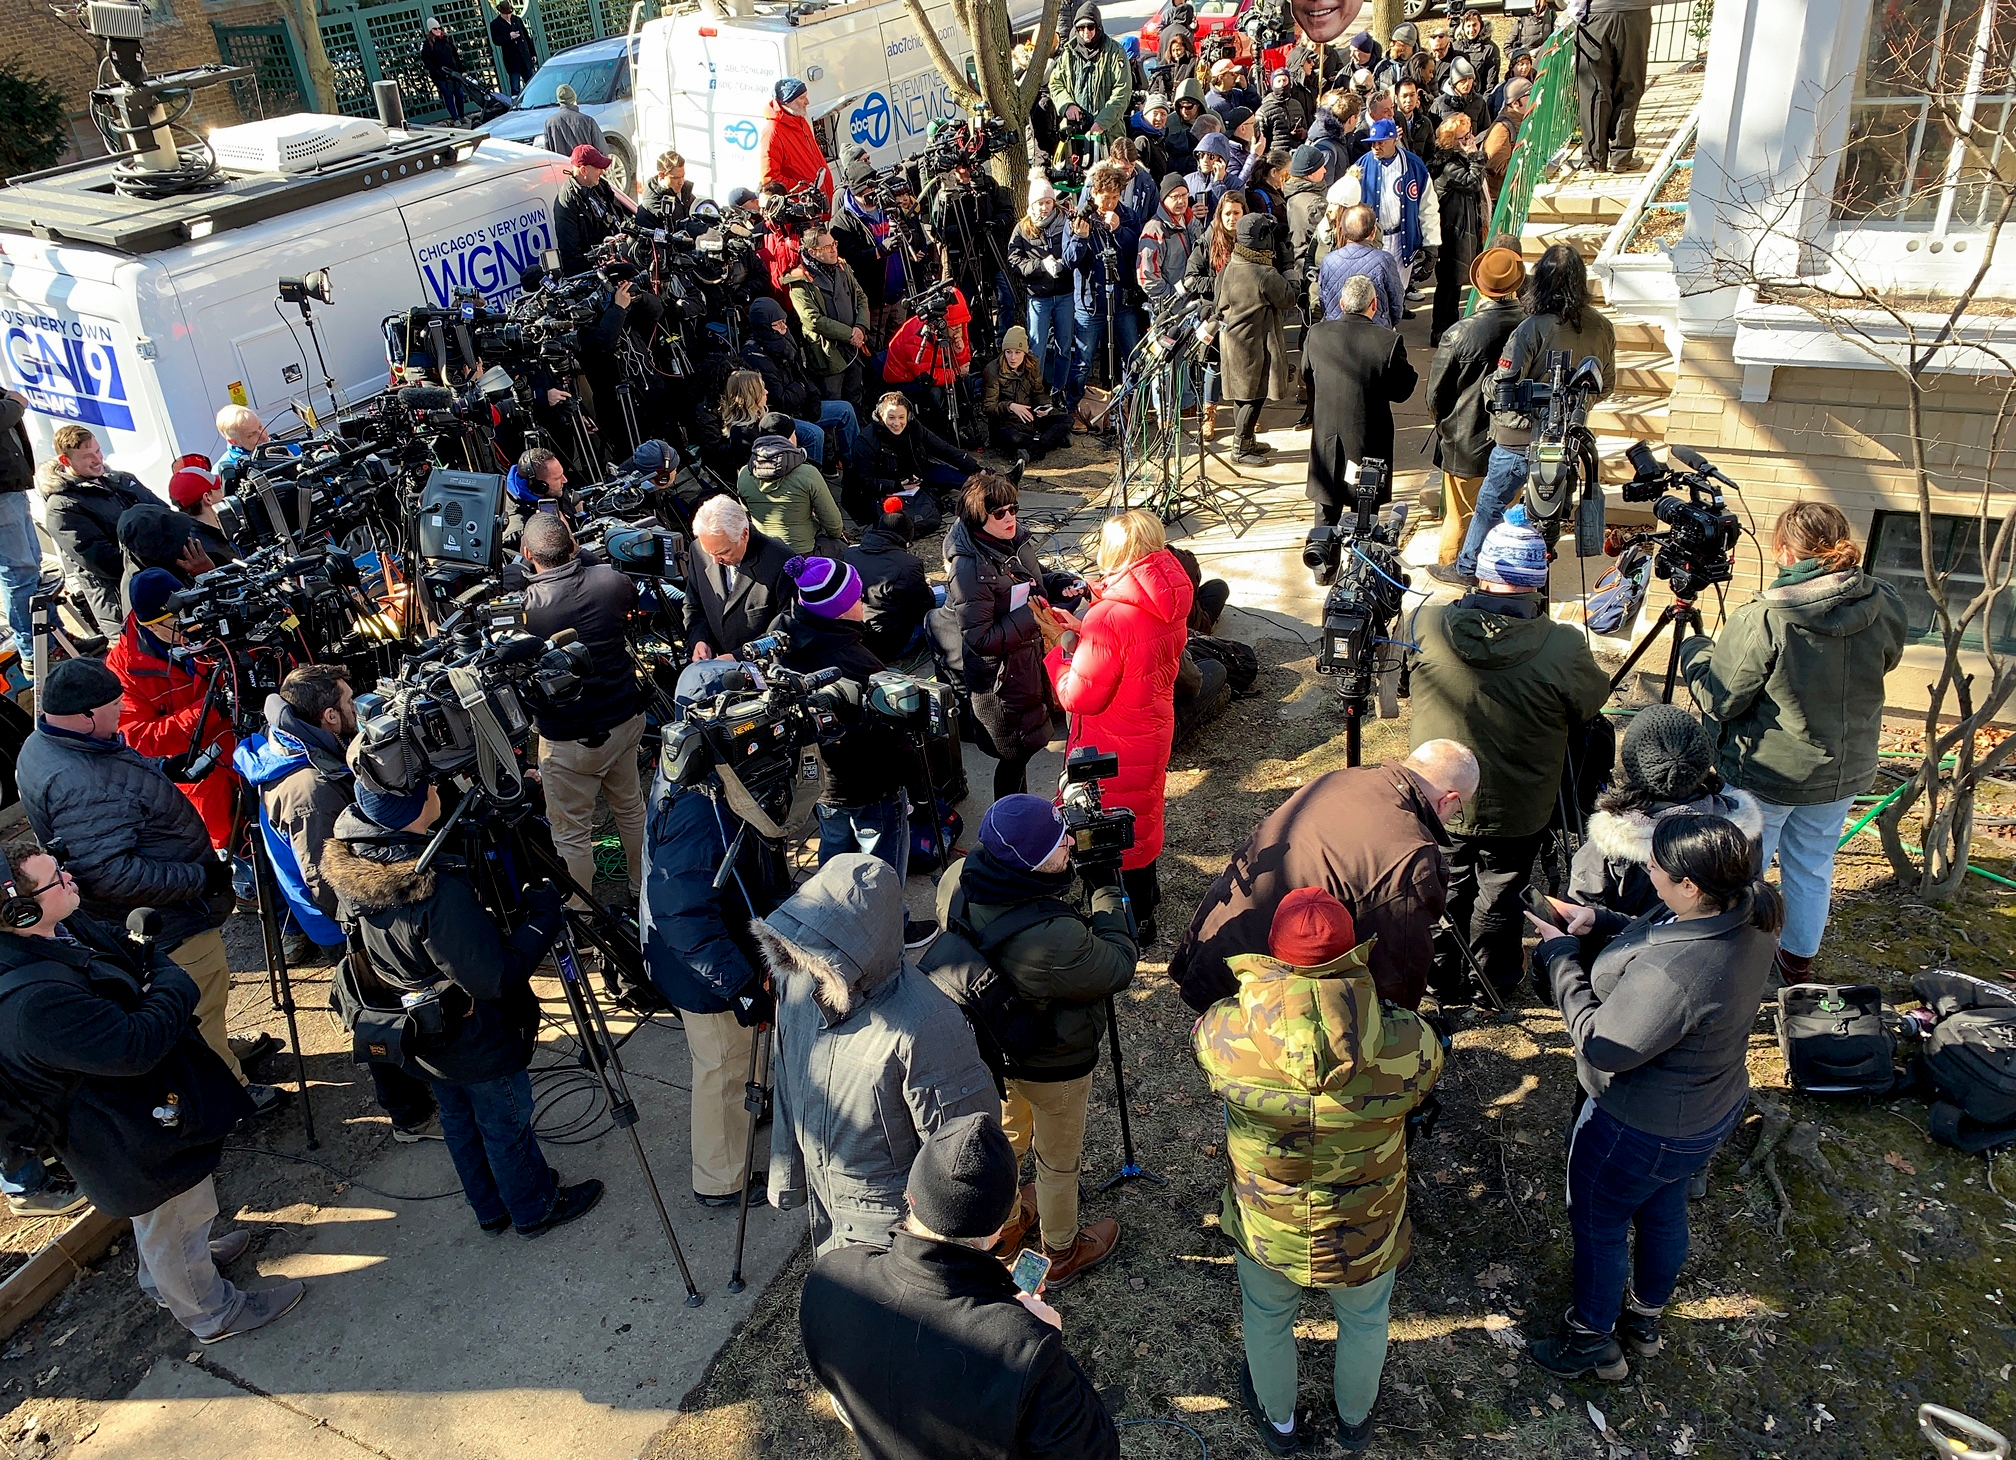 Image: Media waits for Rod Blagojevich to speak at a press conference the day after his sentence was commuted by President Donald Trump on Feb. 19, 2020.